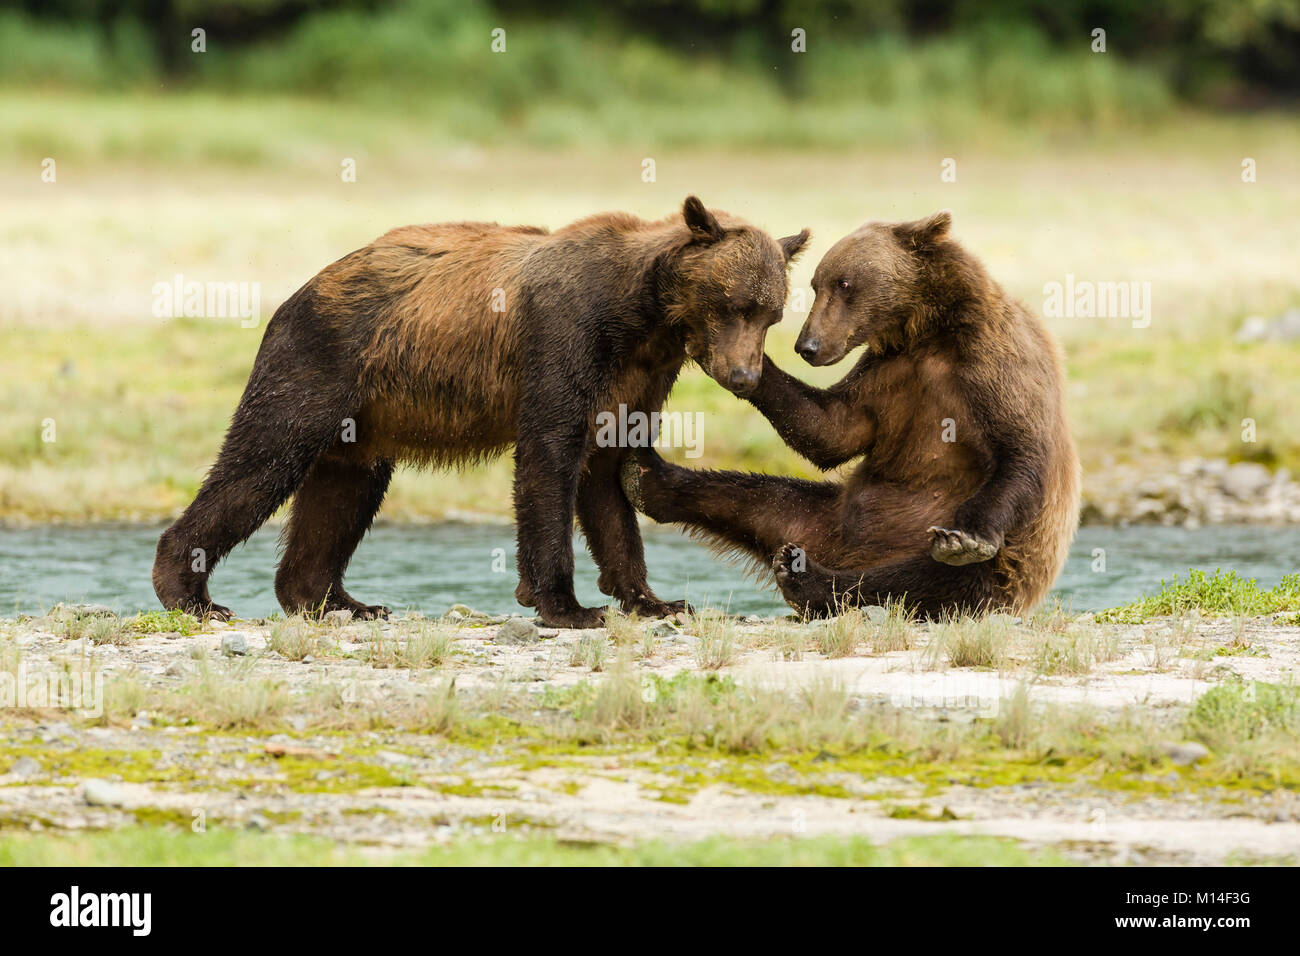 Brown bears wrestle for dominance to fish for salmon along Geographic Creek at Geographic Harbor in Katmai National - Stock Image